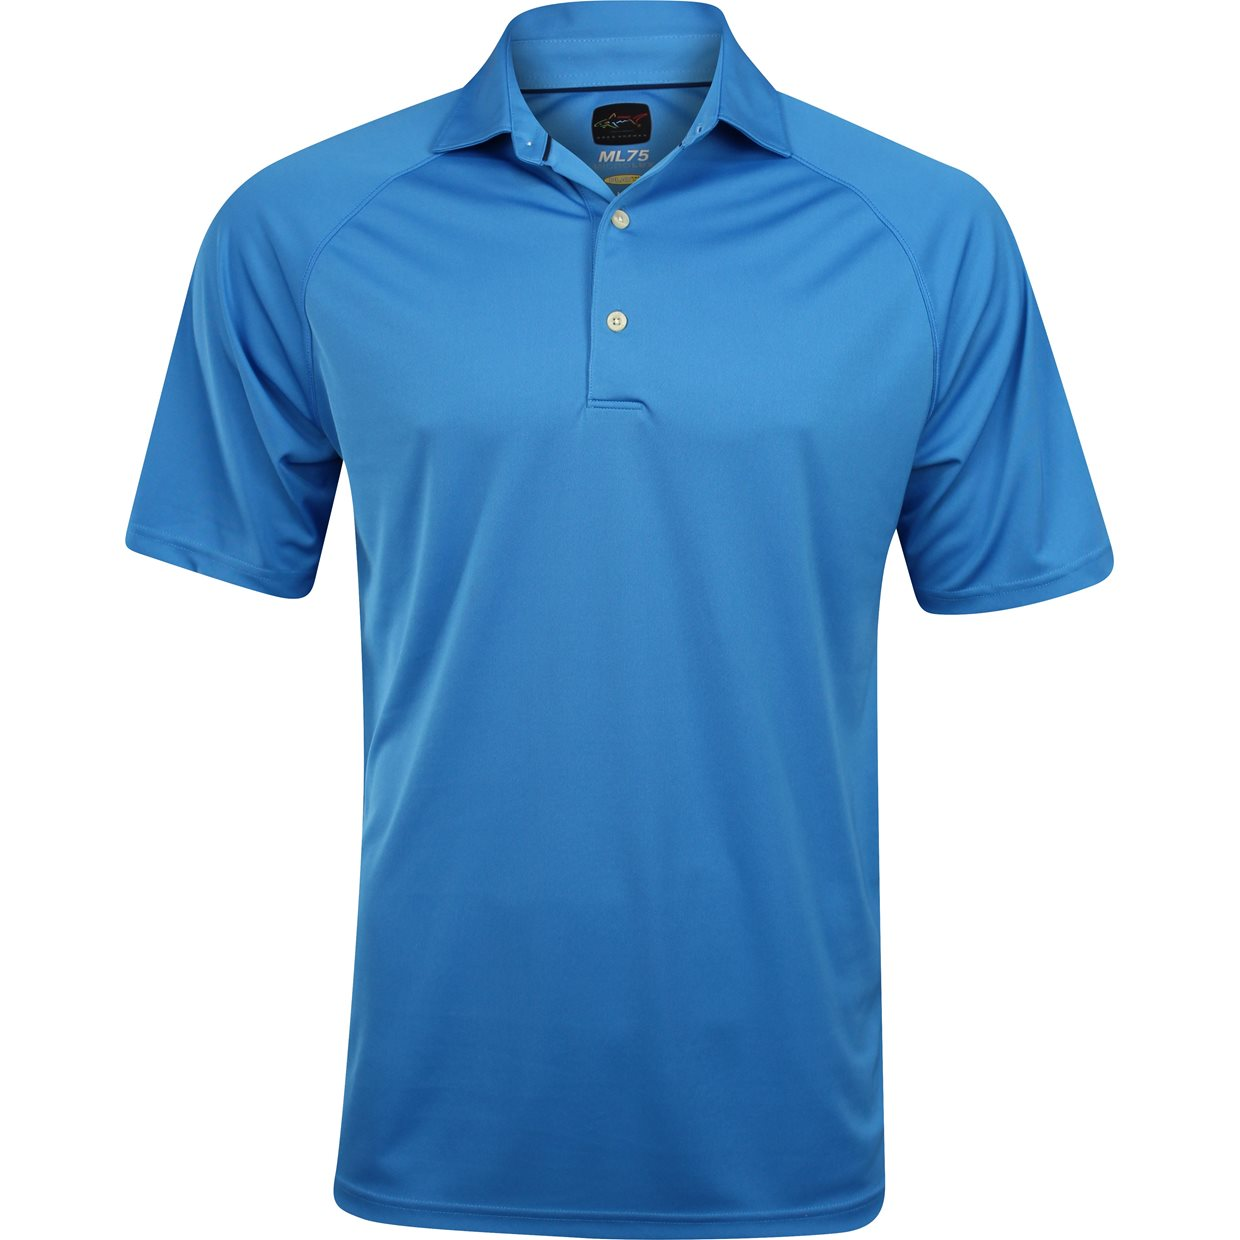 Greg norman ml75 micro lux solid shirt apparel m patriot for Greg norman ml75 shirts